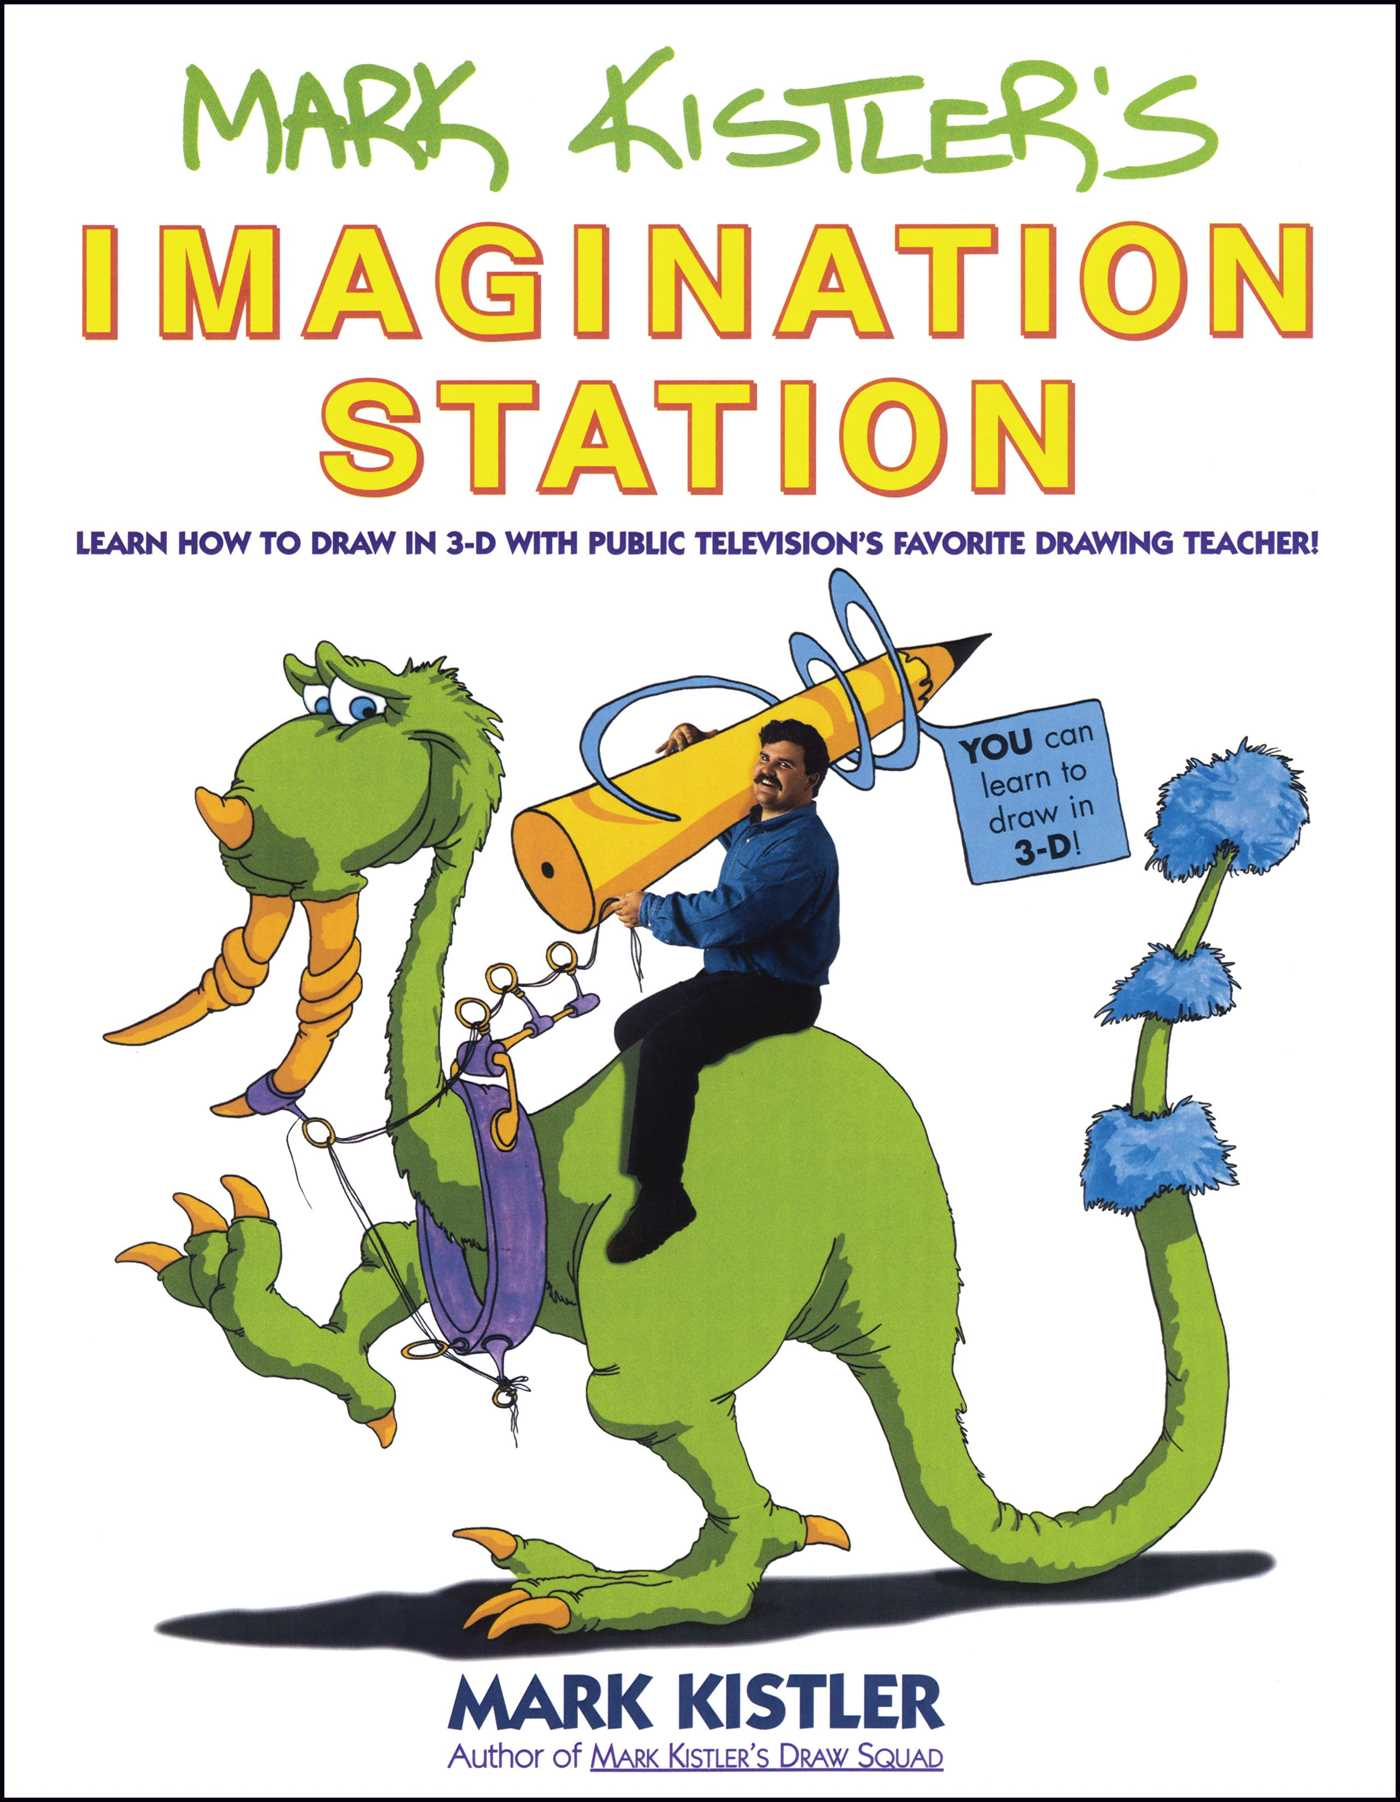 Mark kistlers imagination station 9780671500139 hr